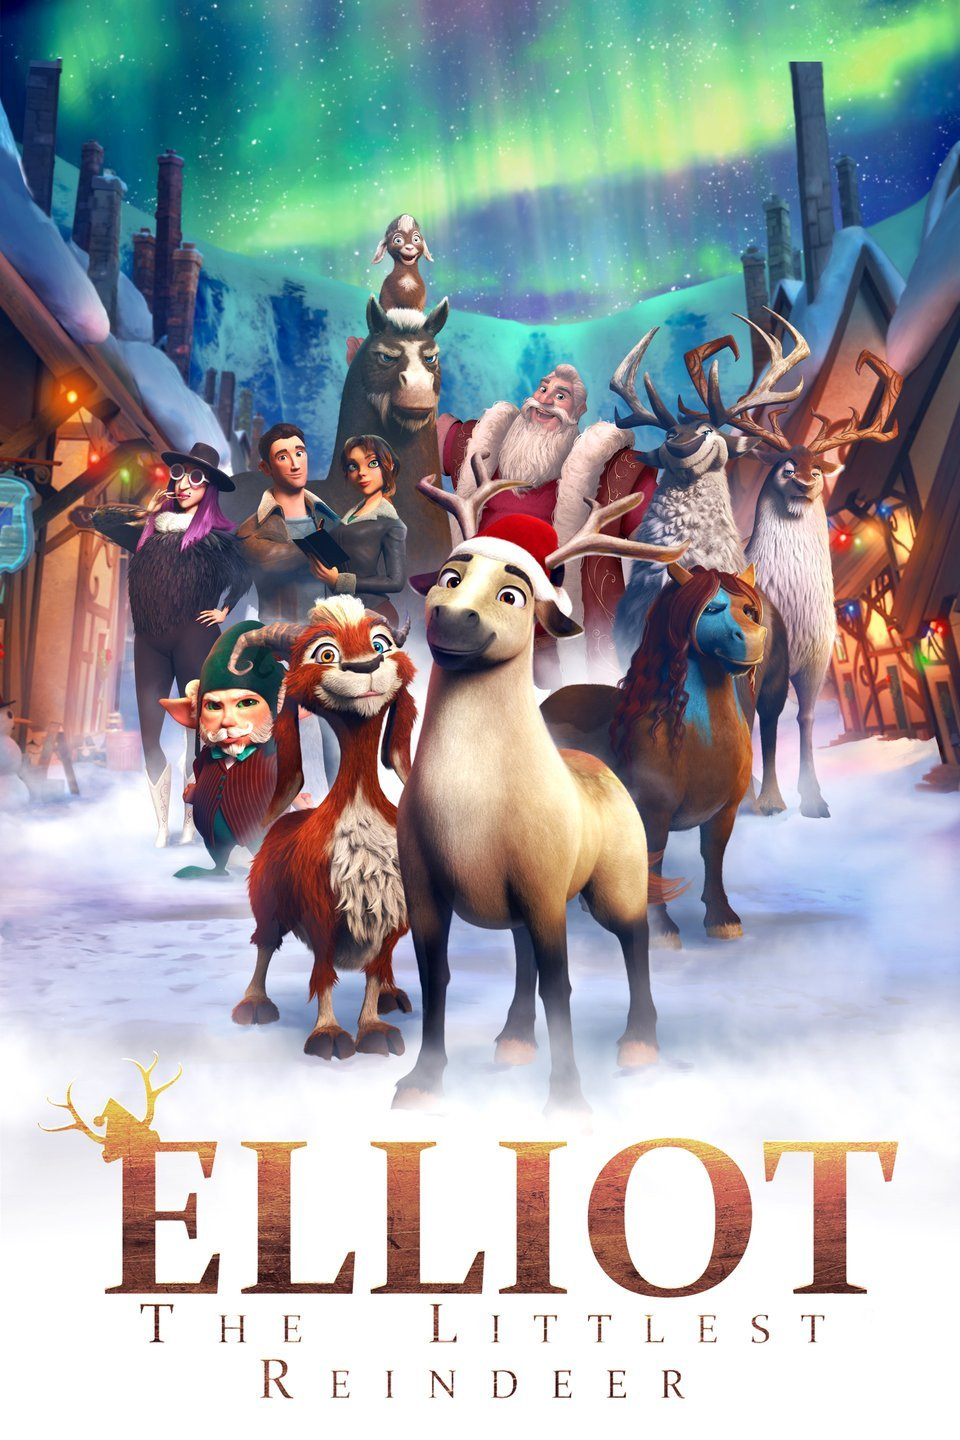 Elliot the Littlest Reindeer (2018)